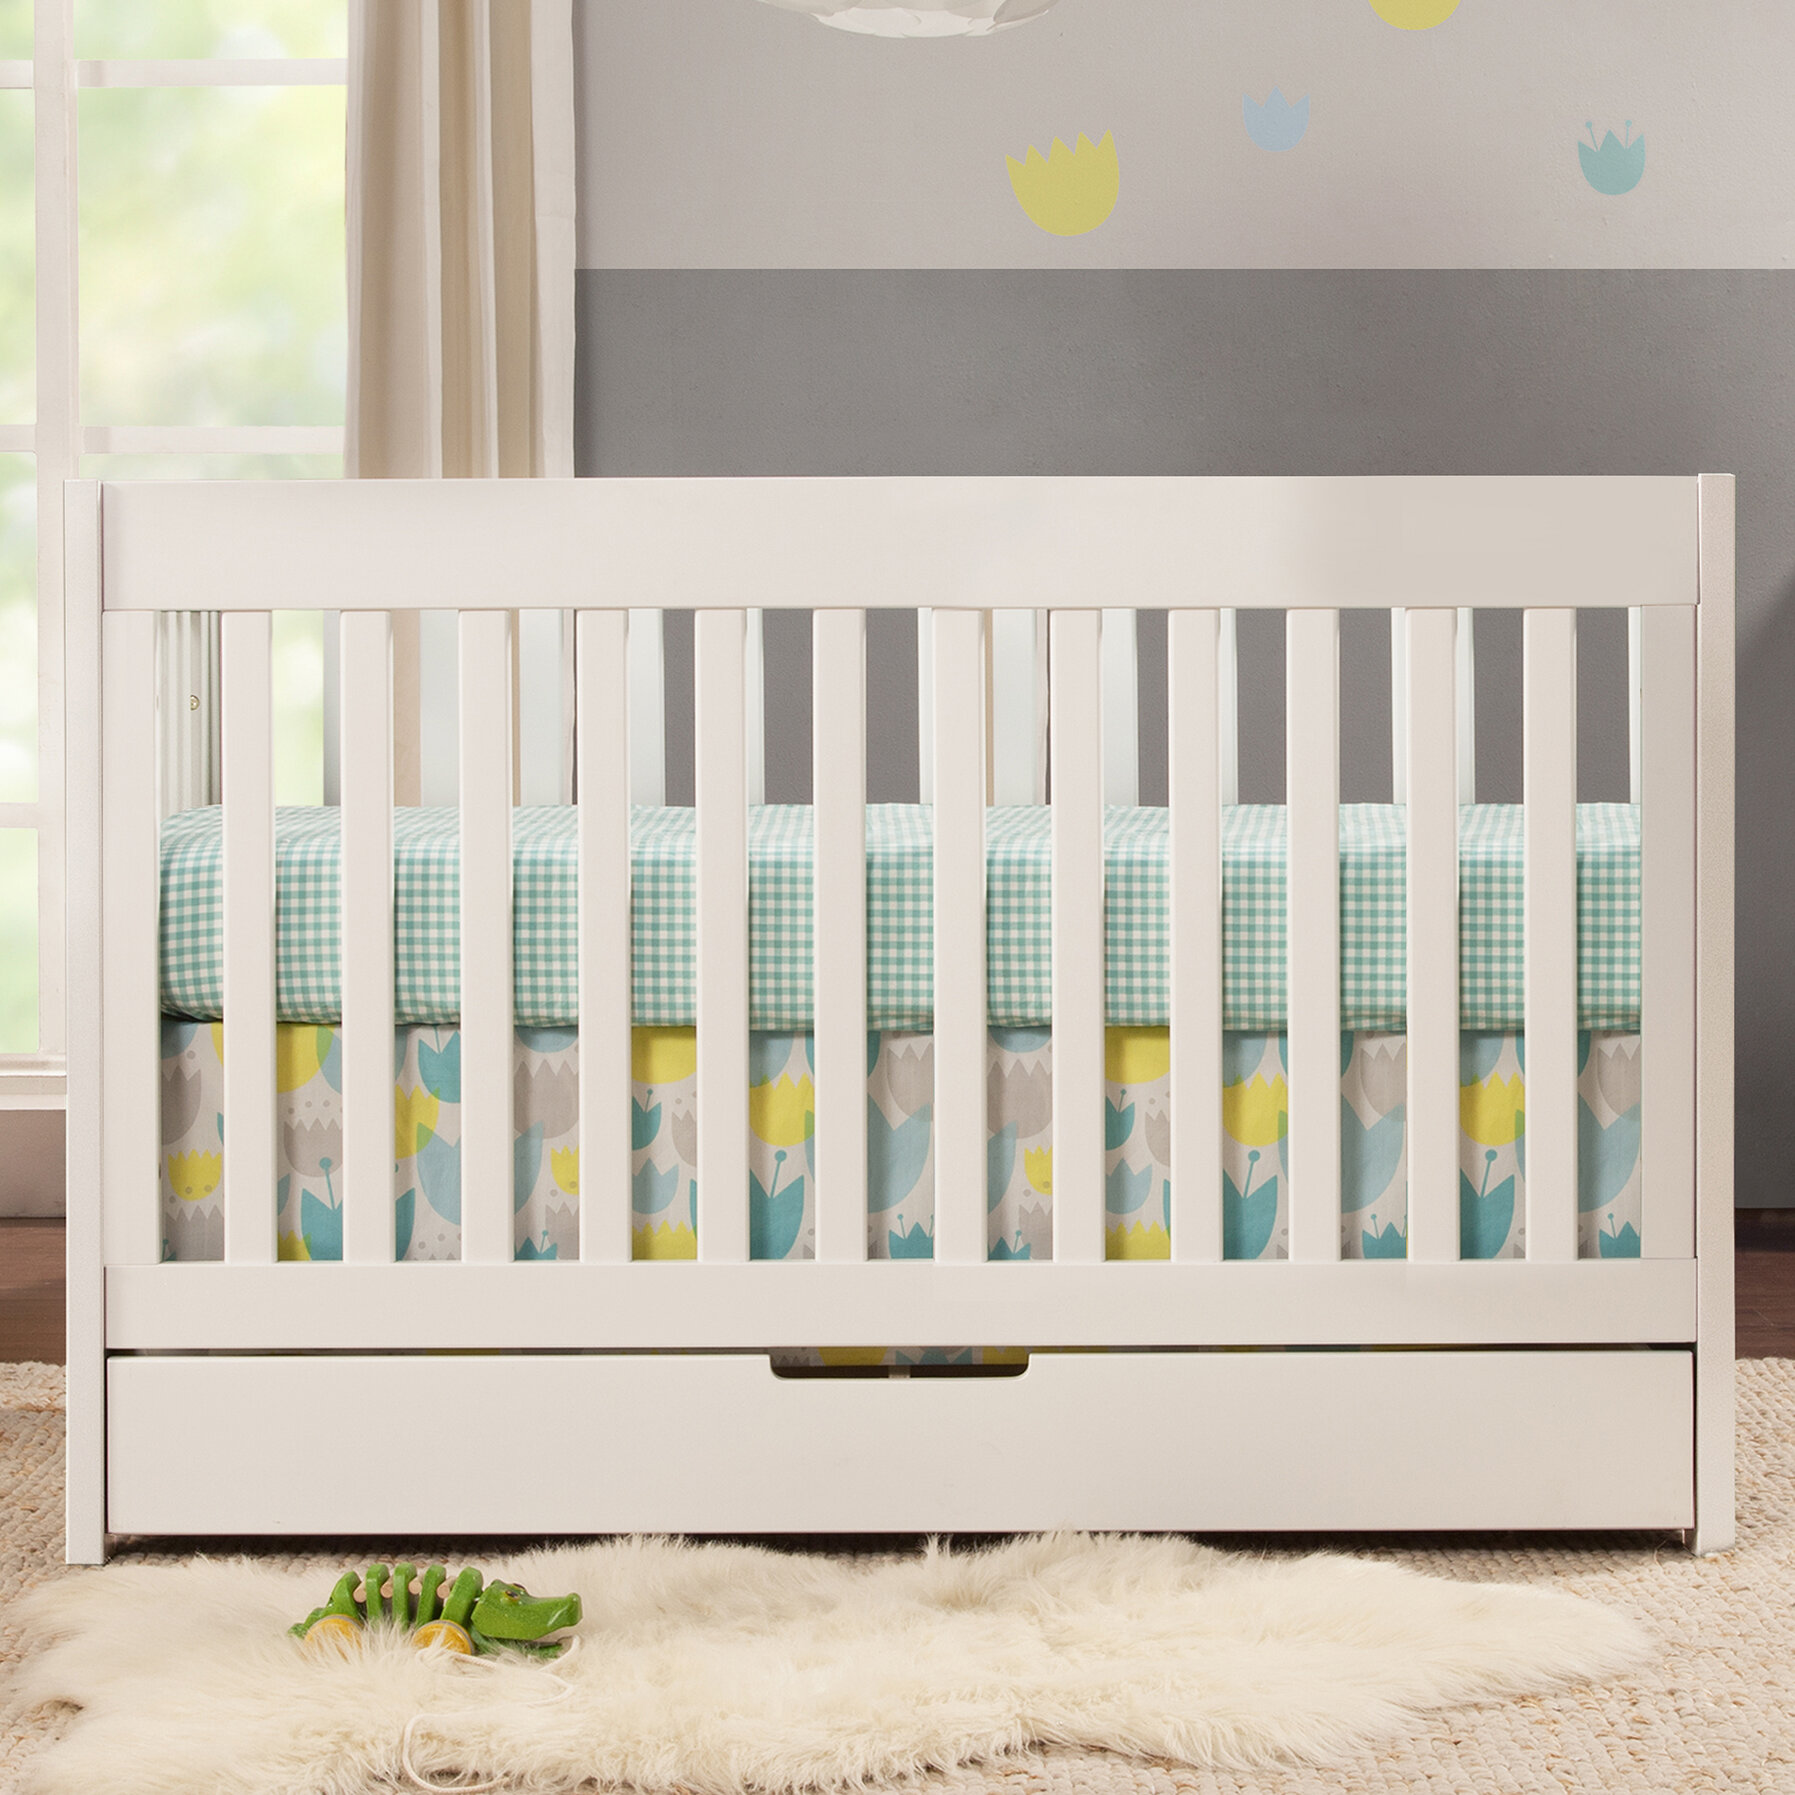 products room into in easy baby relax pure kids crib transform eng classic the s upscale living an way white cribs dorel nursery sourceimage details a and is your ferris trending convertible to wonderful